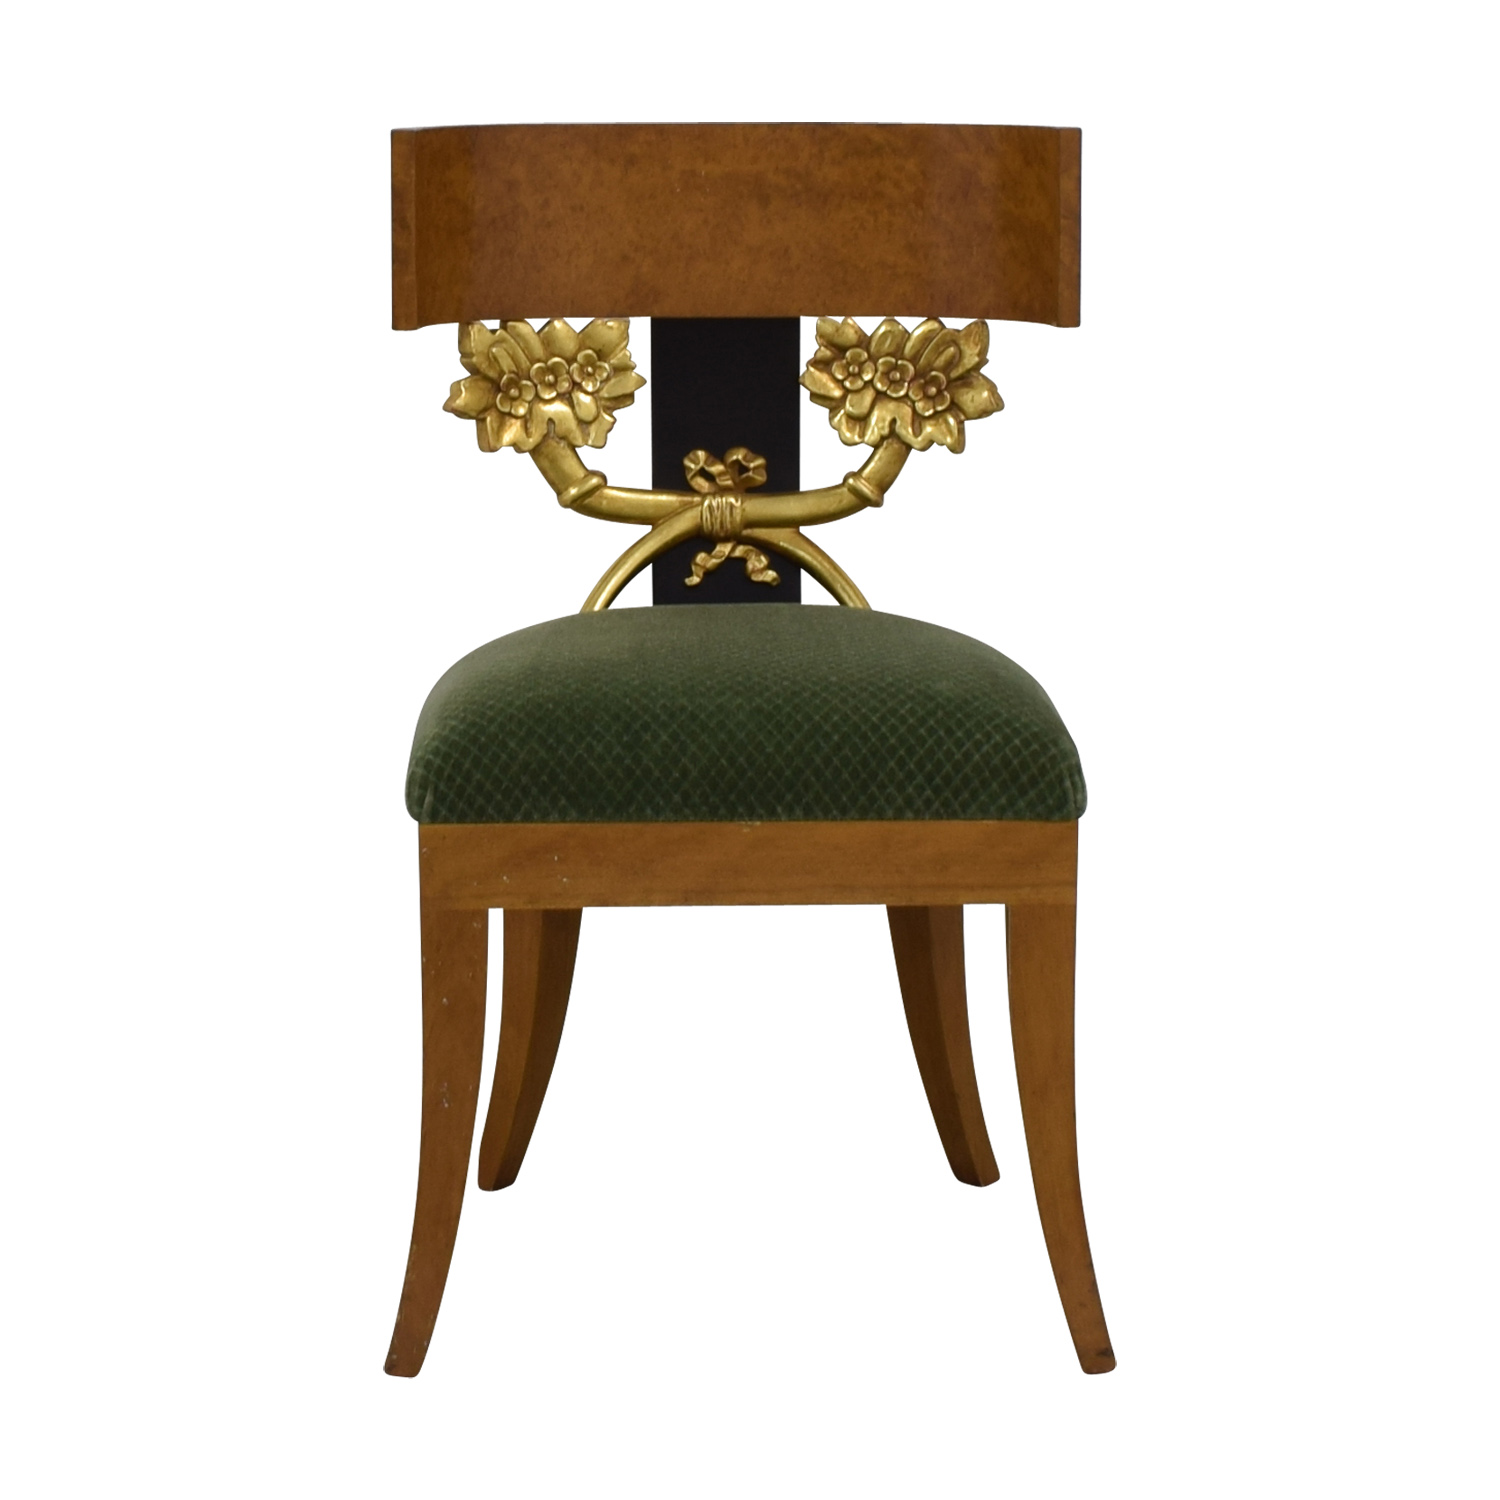 Furniture Masters Furniture Masters Retro Wooden Chair used